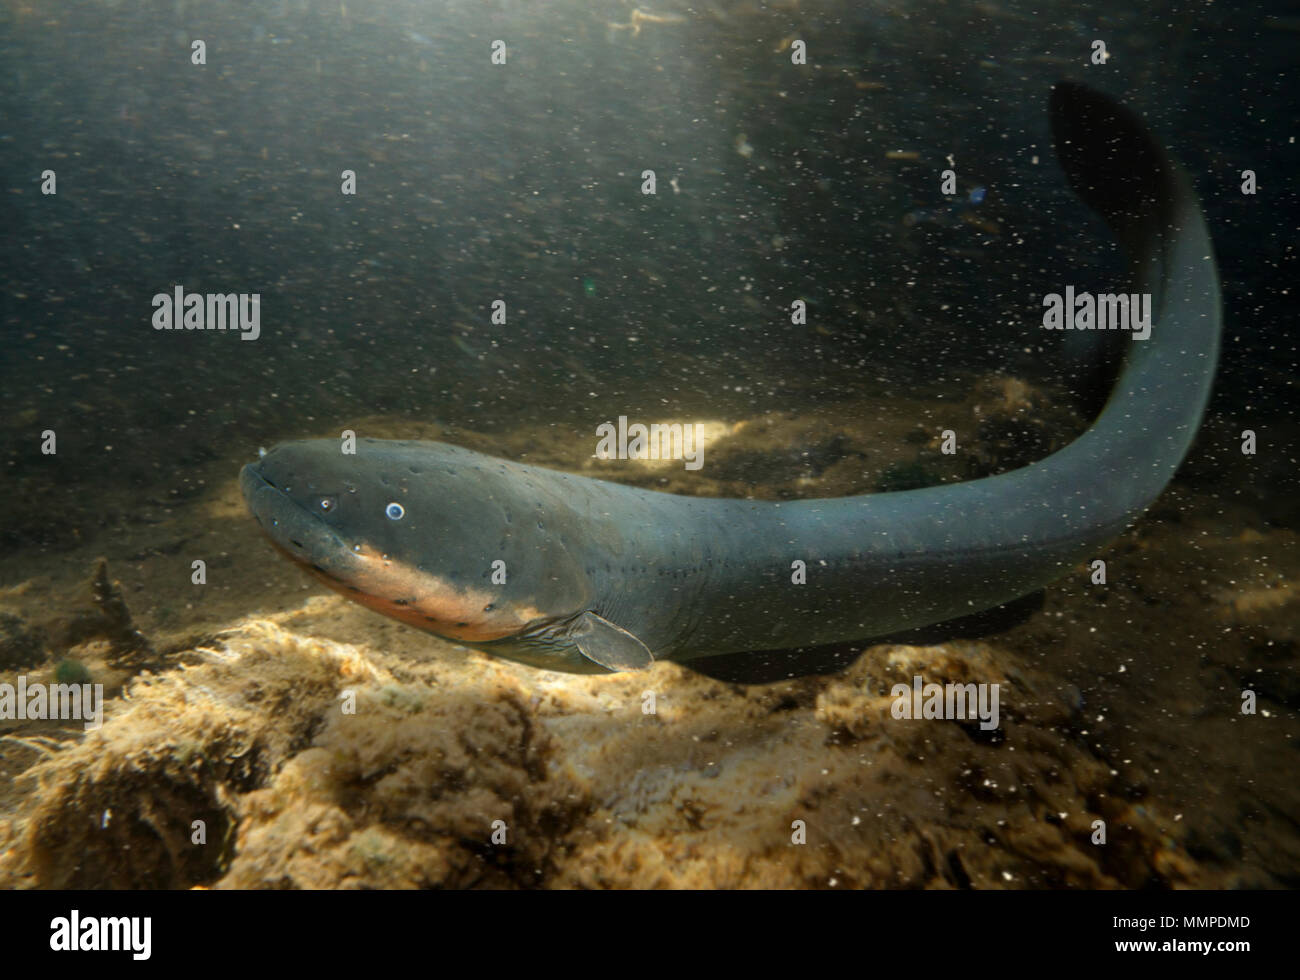 Electric eel, Electrophorus electricus. The electric eel has three pairs of abdominal organs that produce electricity for lethal discharges that allow - Stock Image